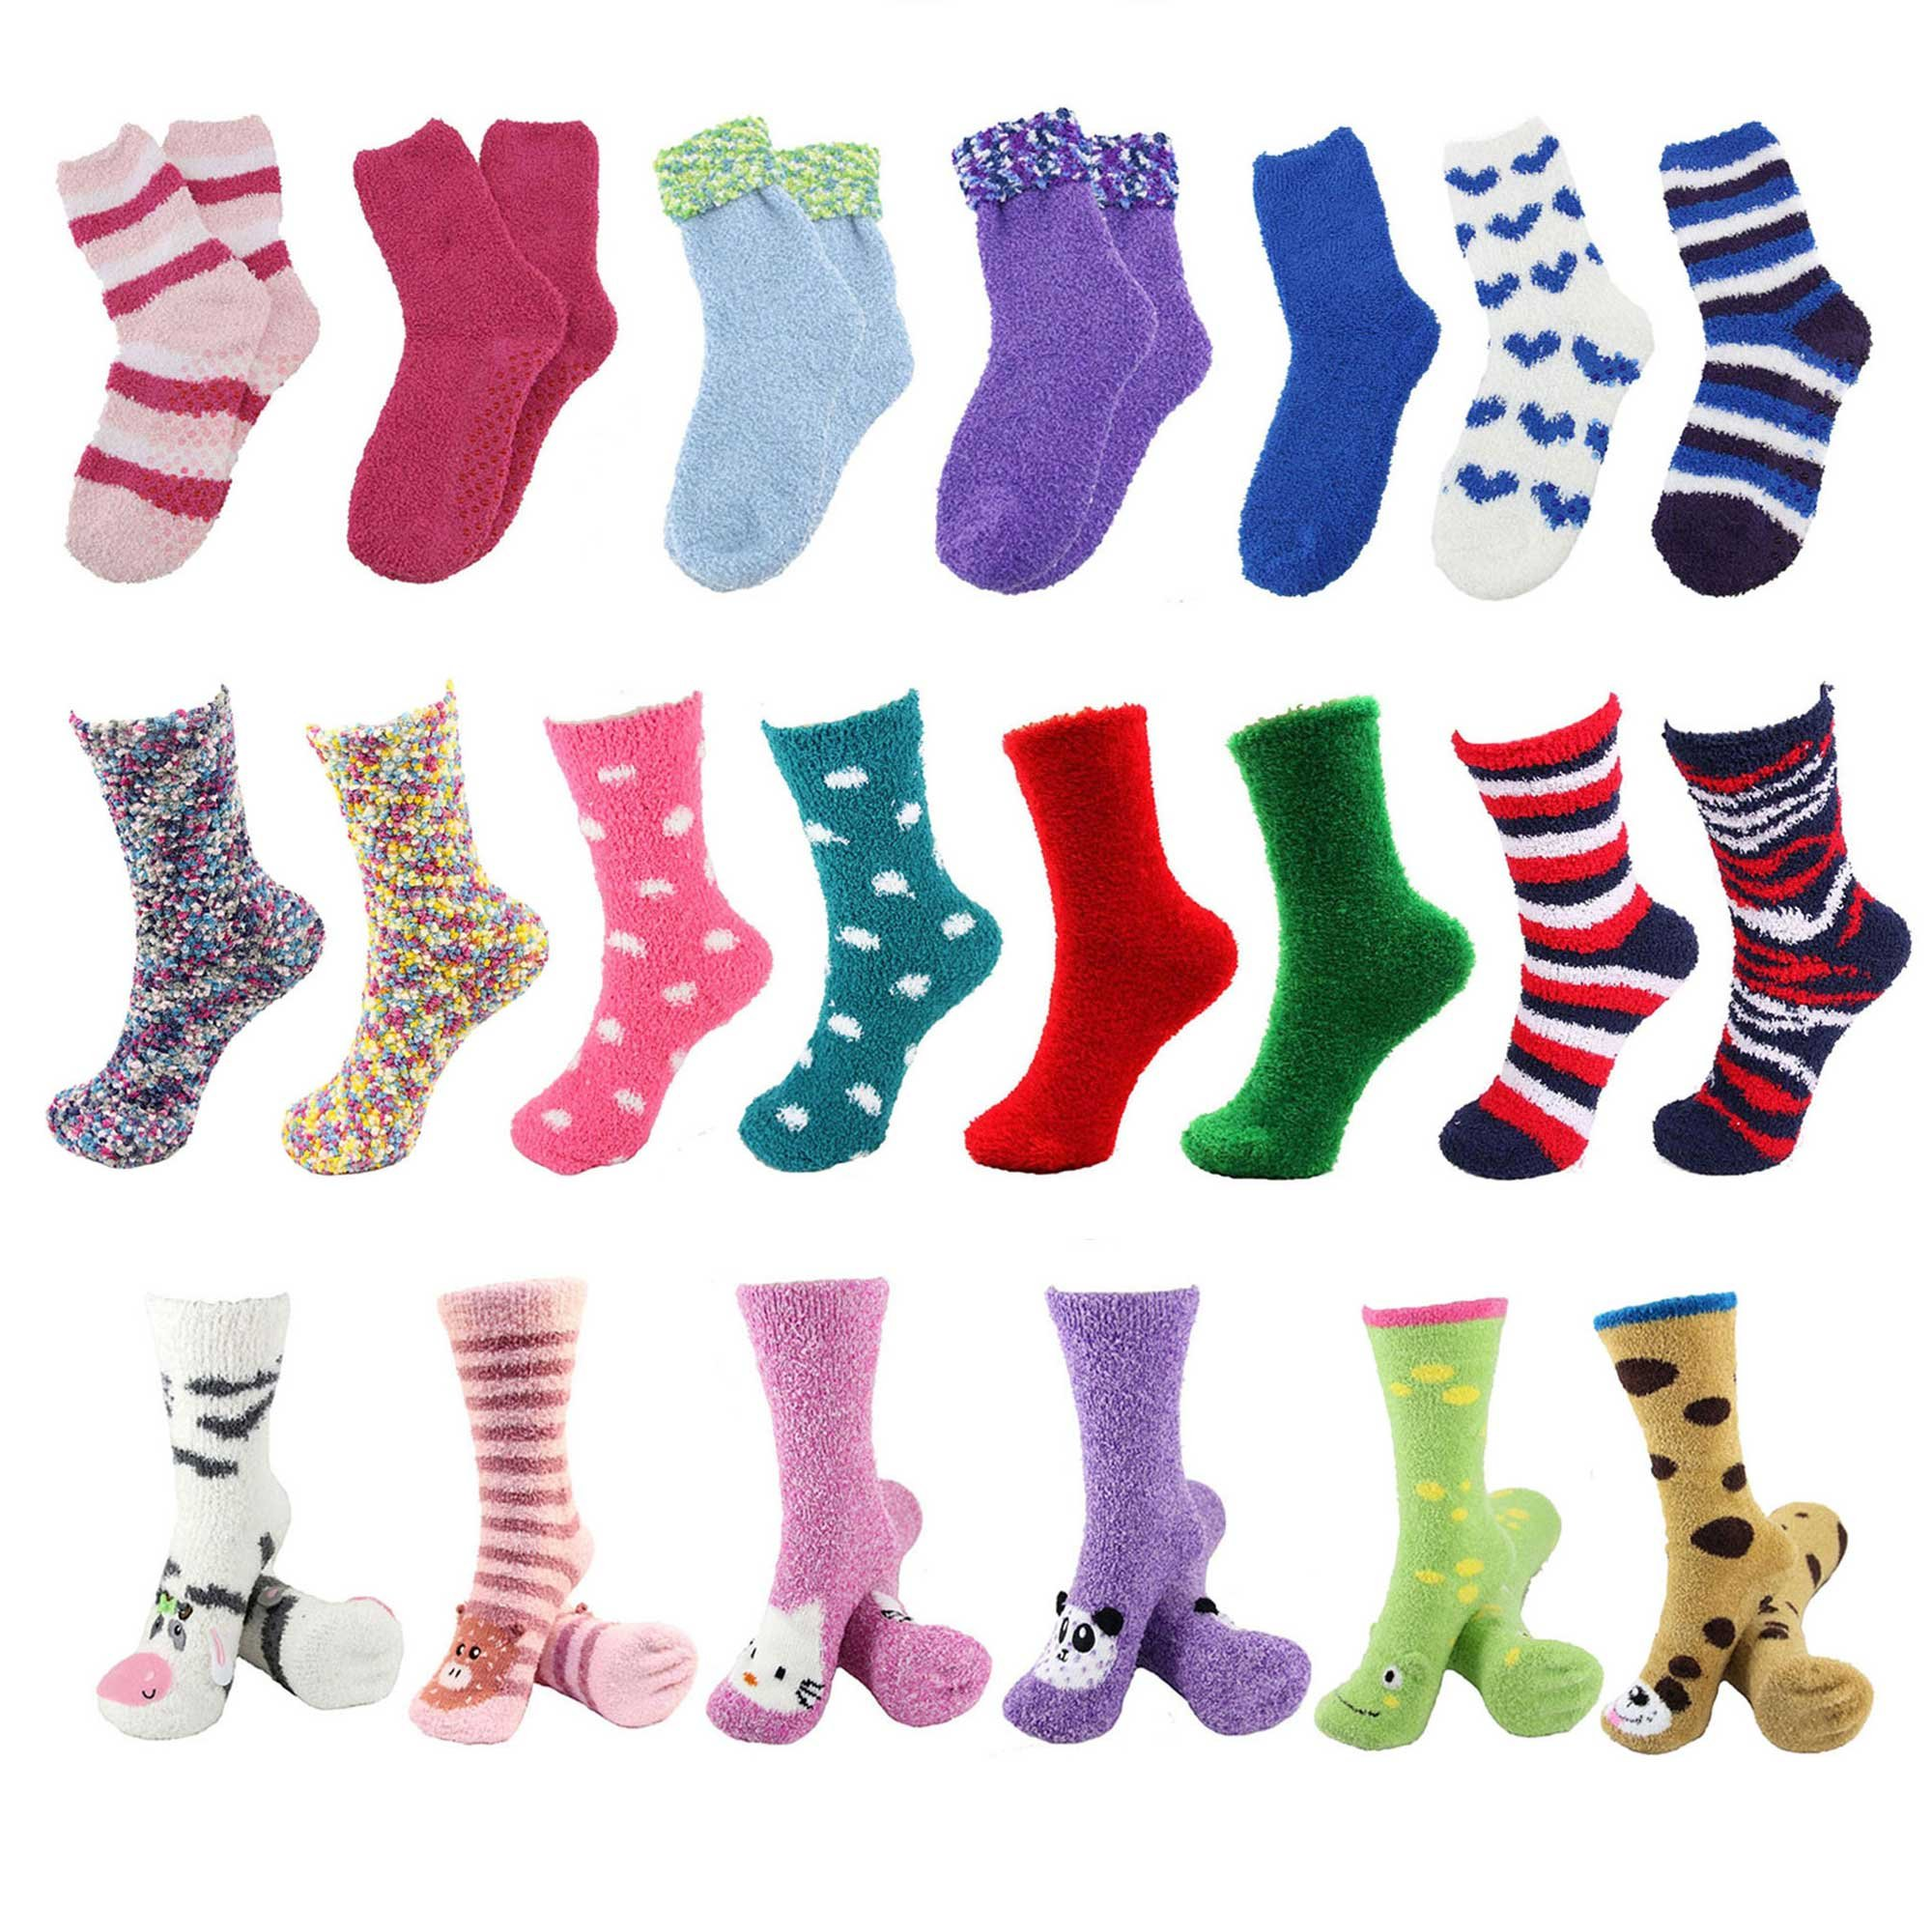 Sock of the Month Club - Fuzzy Cozy Home Socks for Women - 3 pr/mo for 12 Months